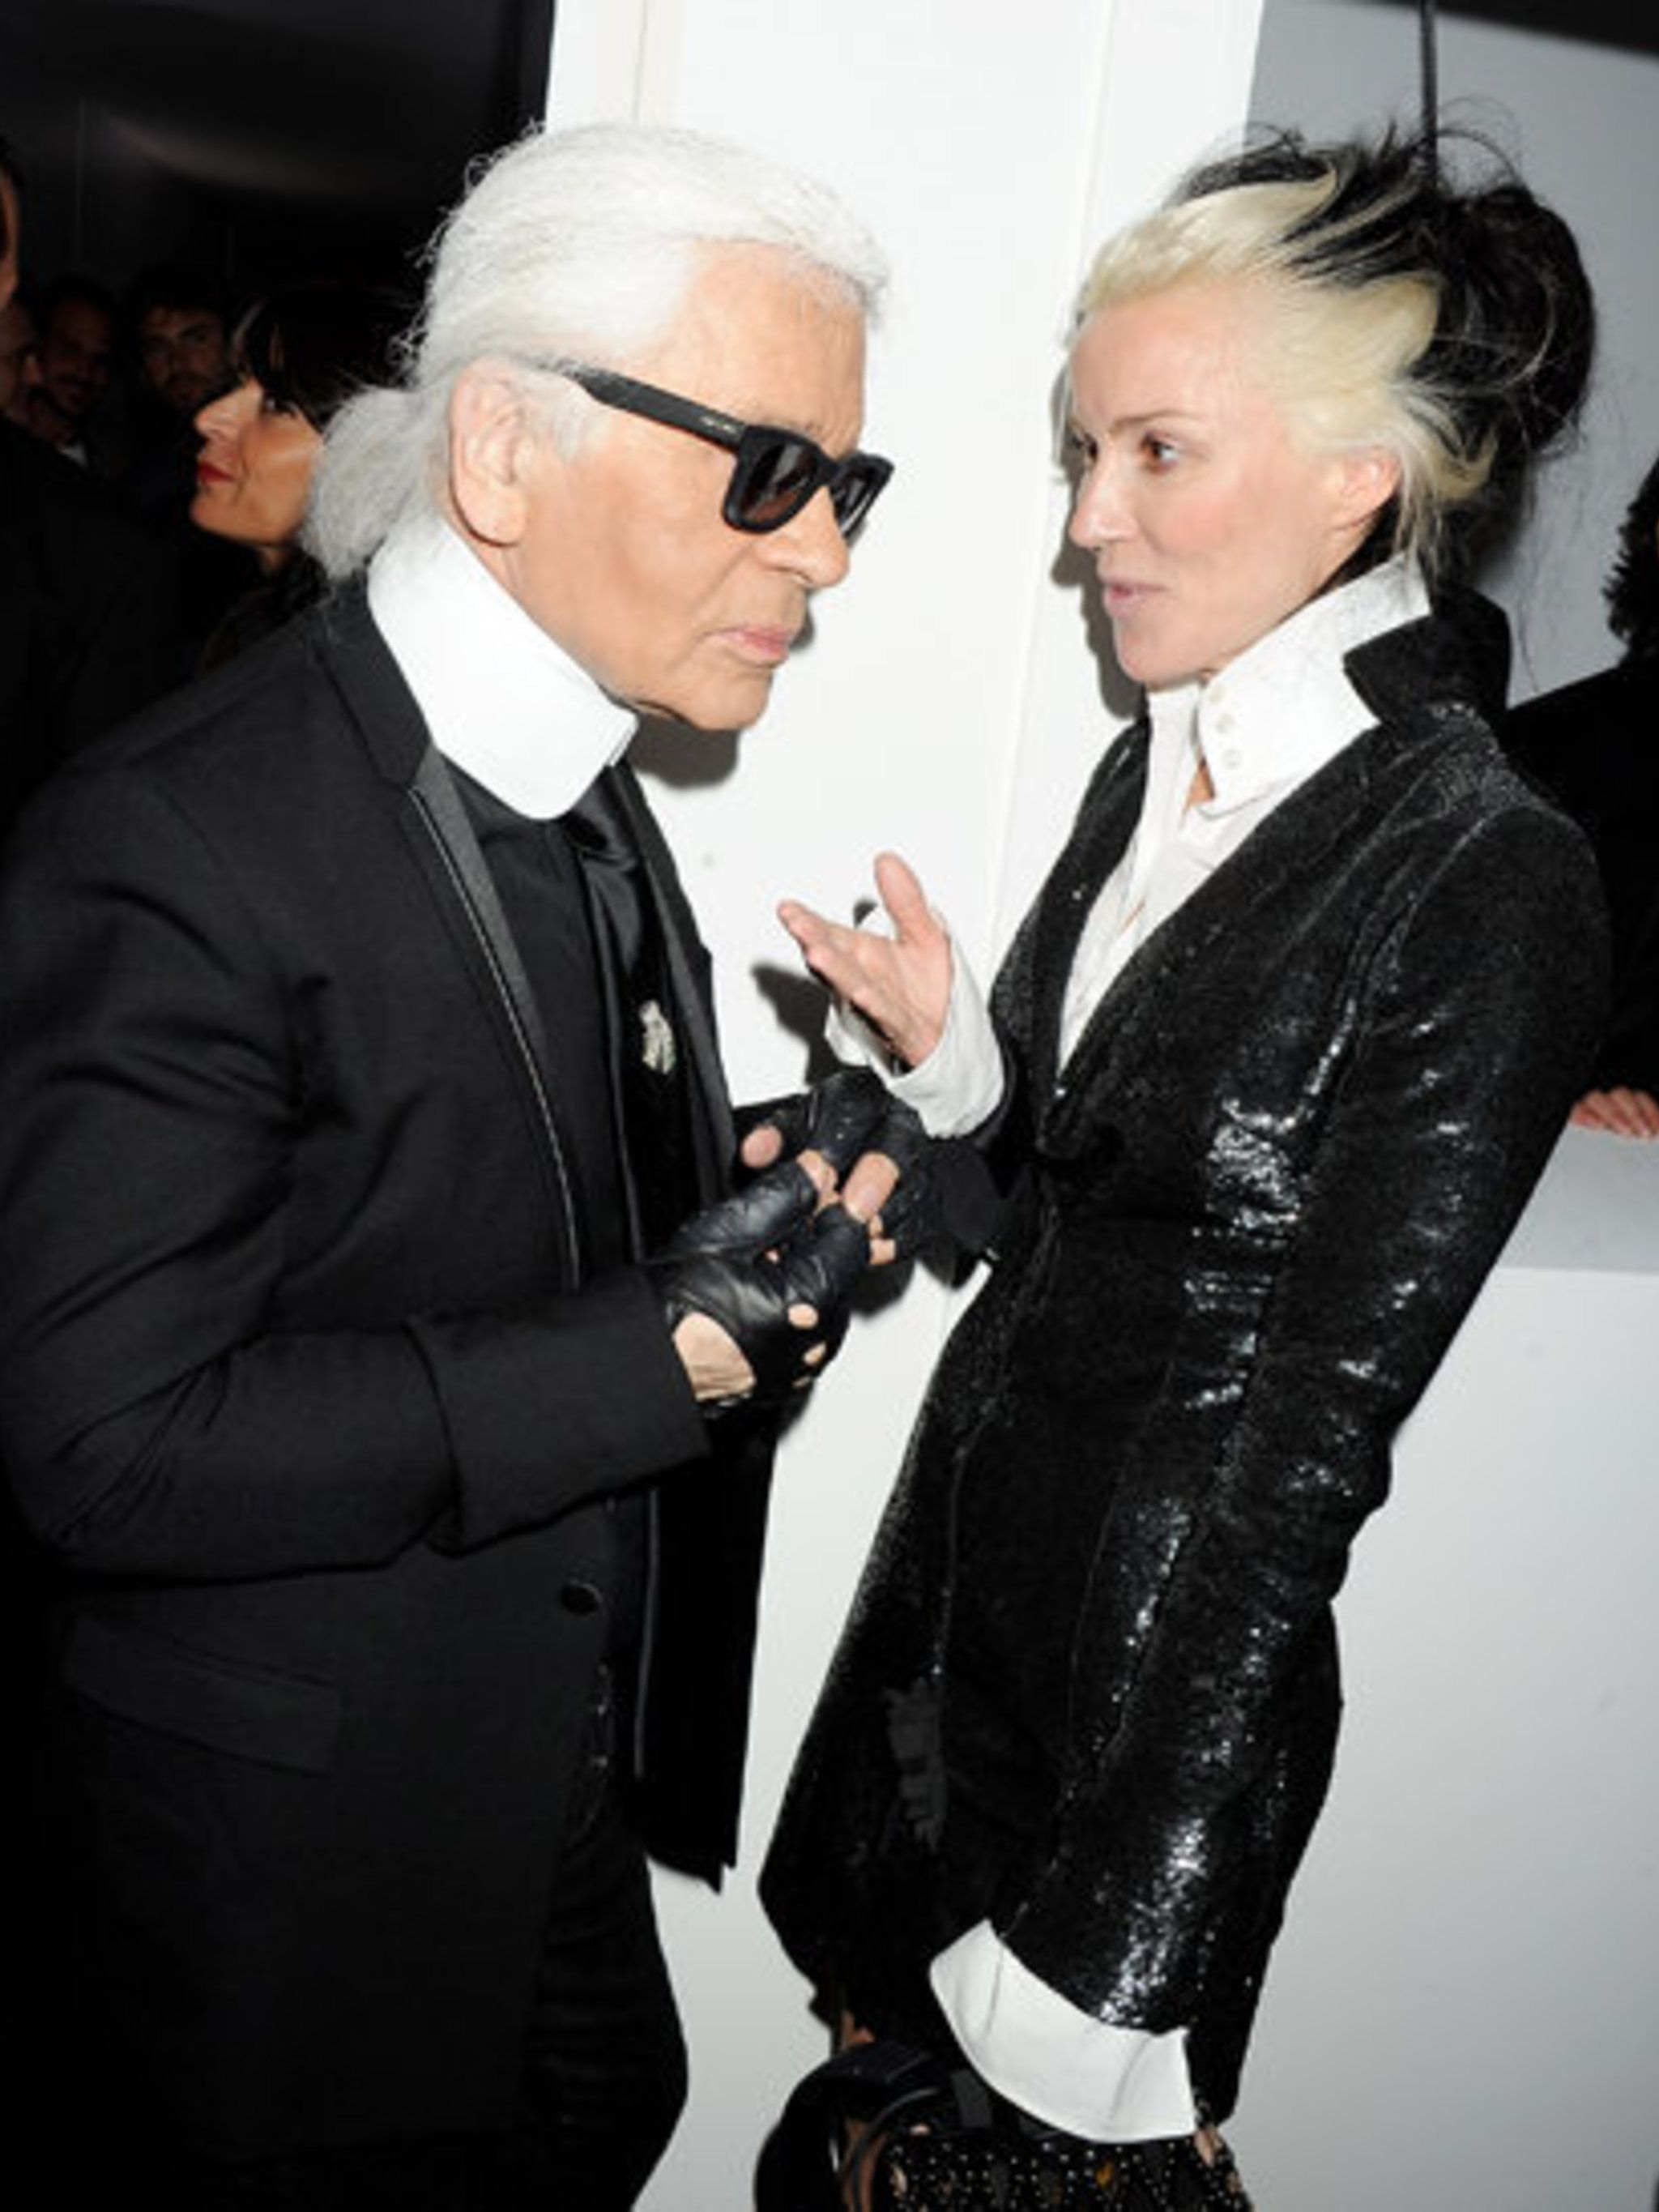 <p>Karl Lagerfeld and Daphne Guinness at the Selfridges launch party</p>